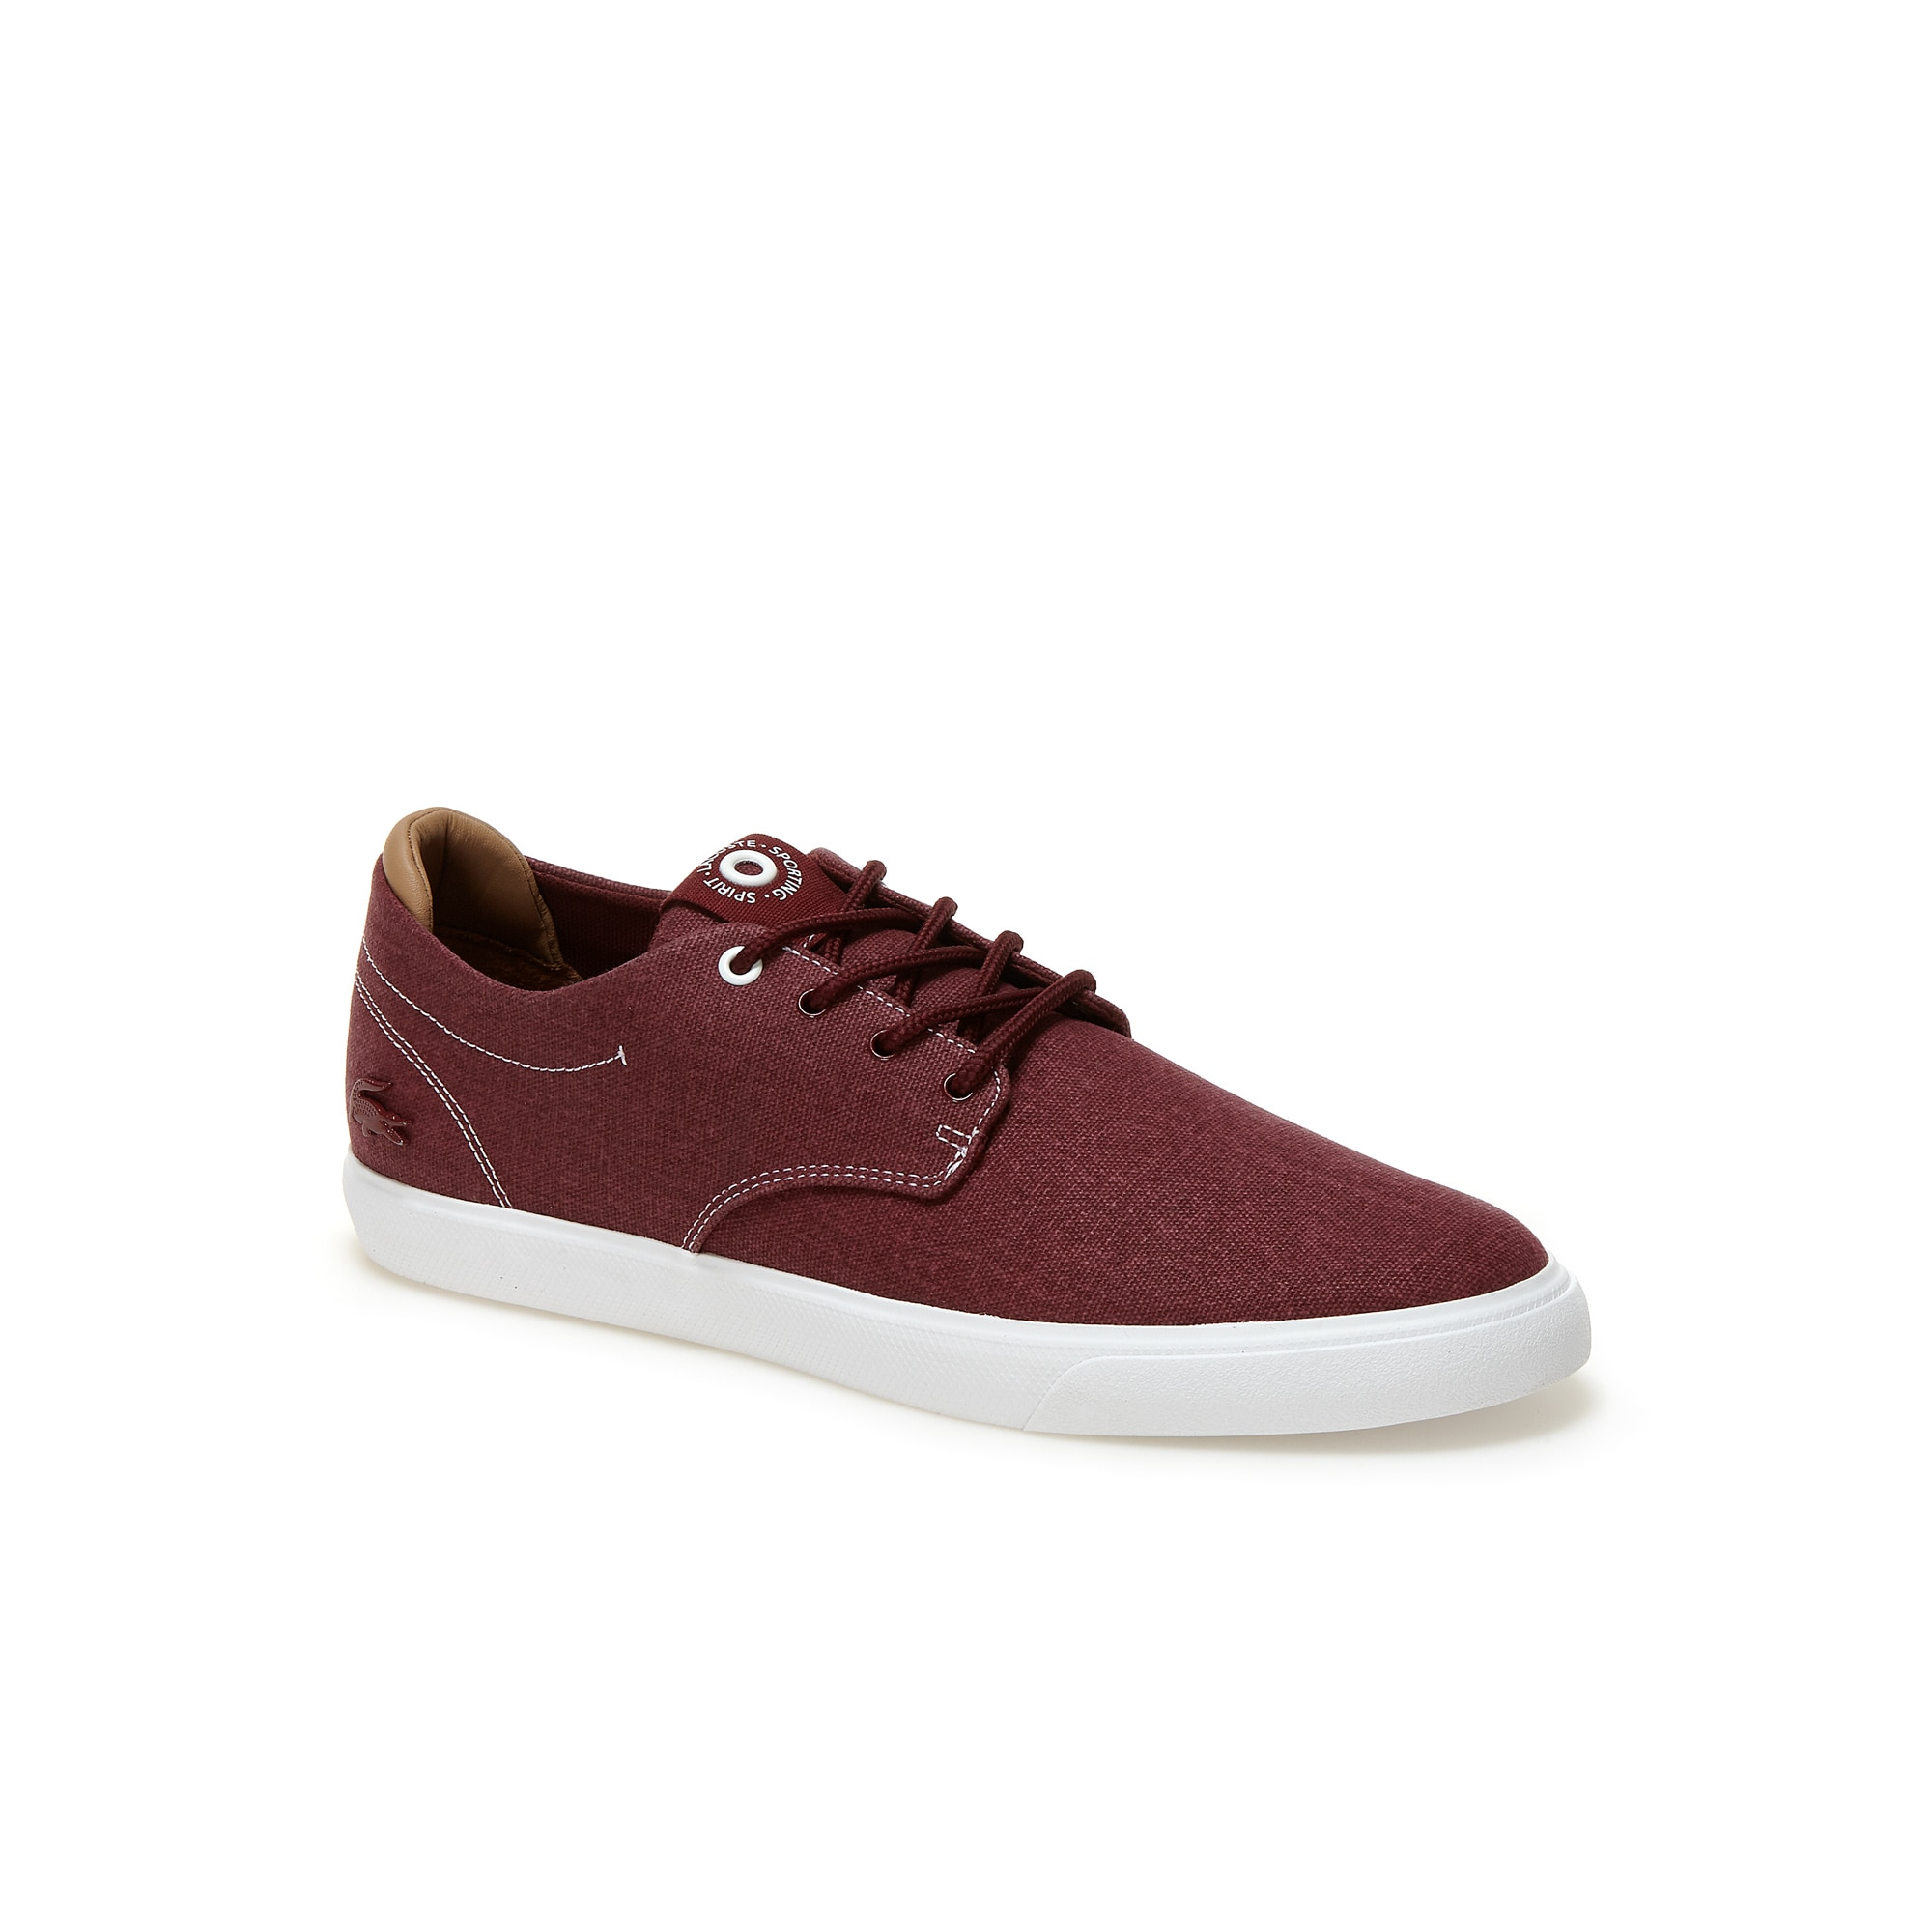 Men's Esparre Canvas Trainers